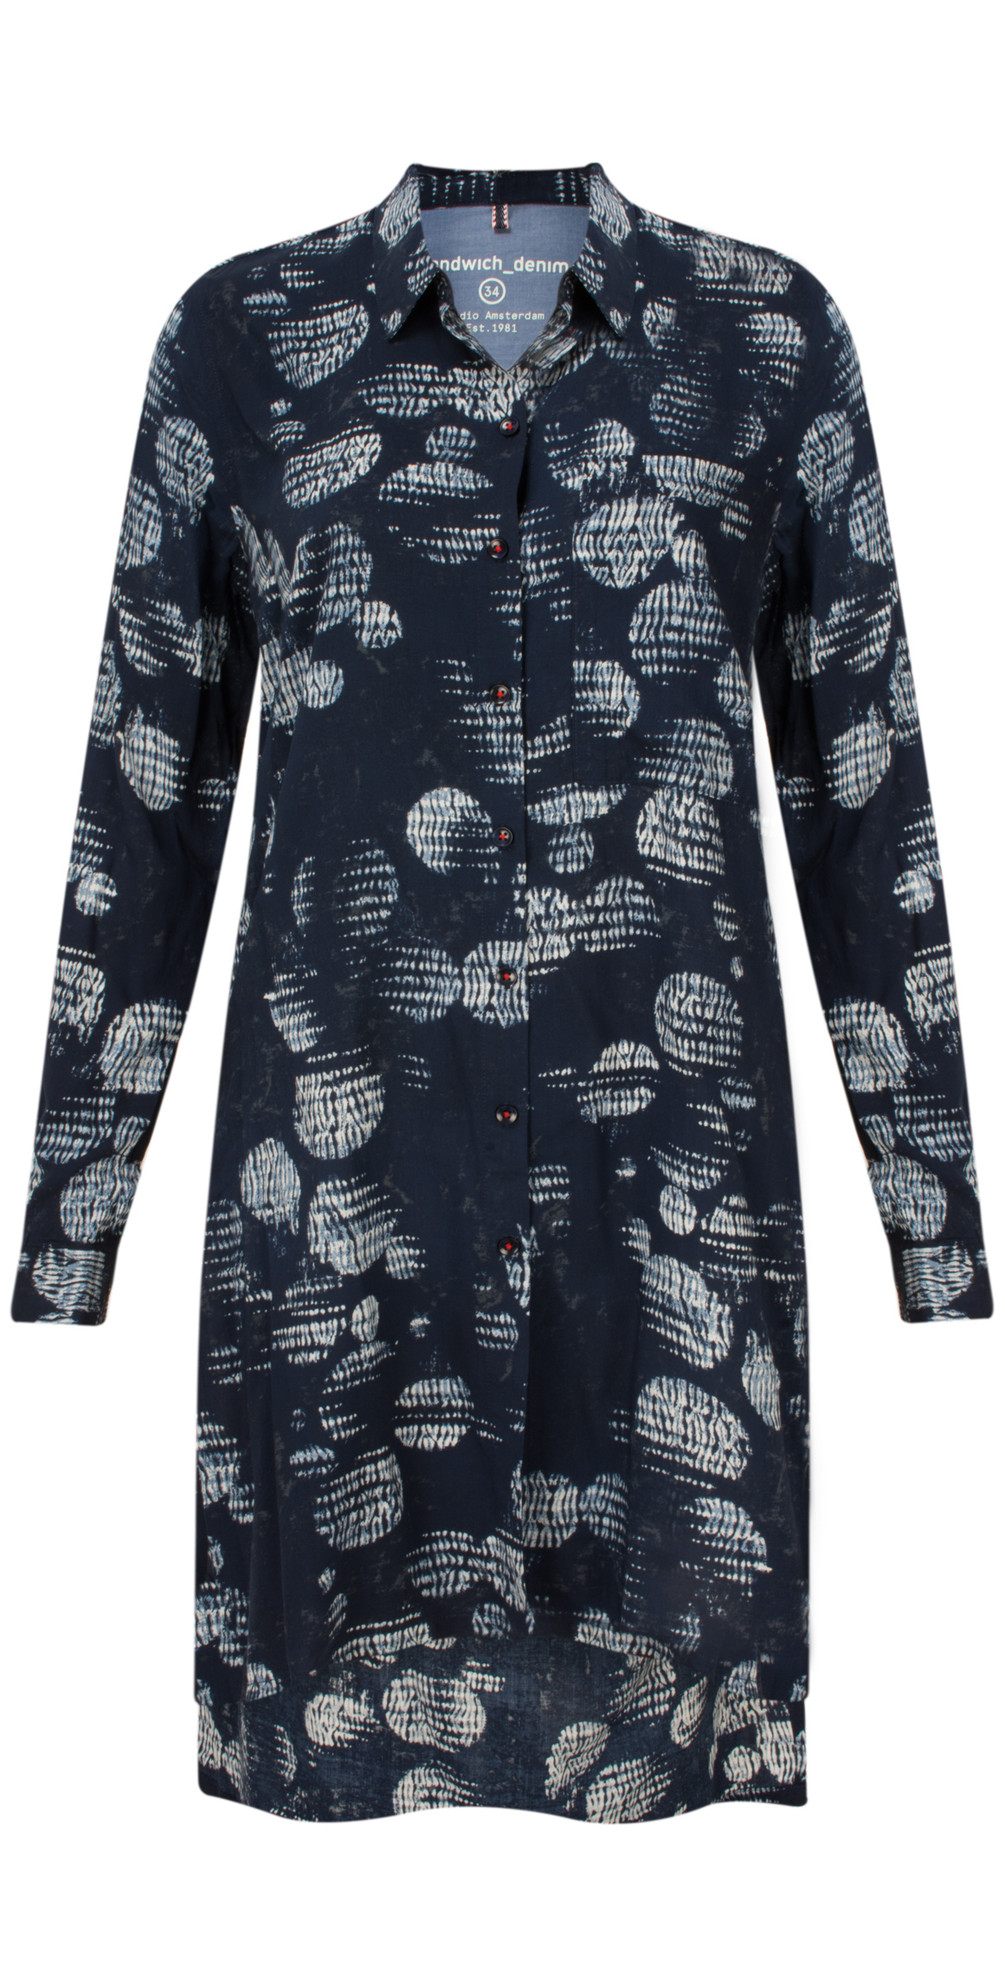 51d5474ca27 Sandwich Clothing Circle Print Tunic Blouse in Navy